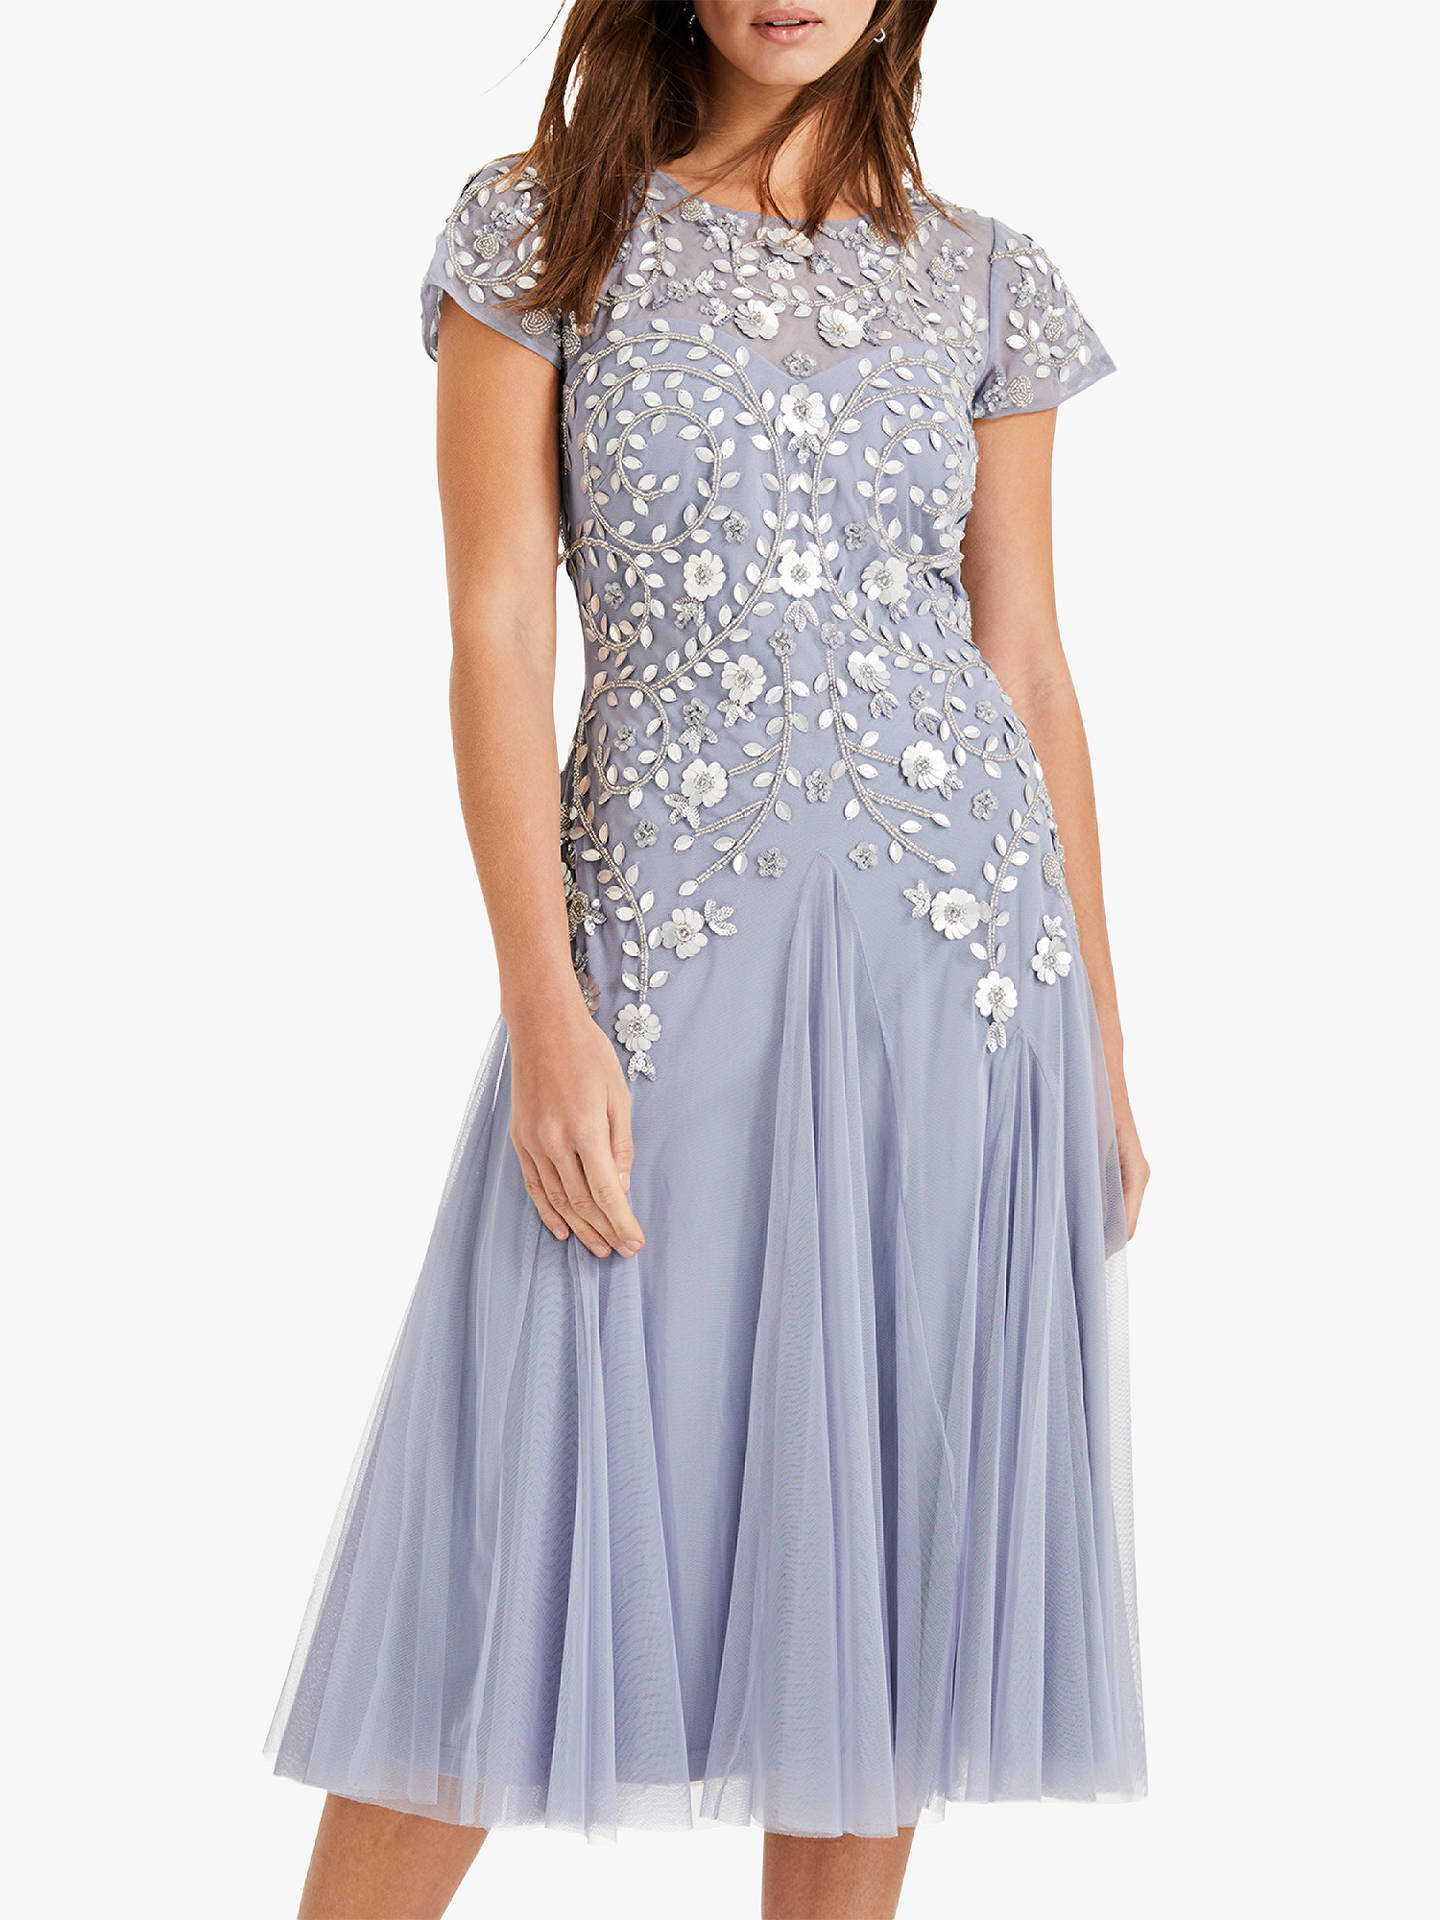 Phase Eight Collection 8 Celia Embroidered Dress Lavender